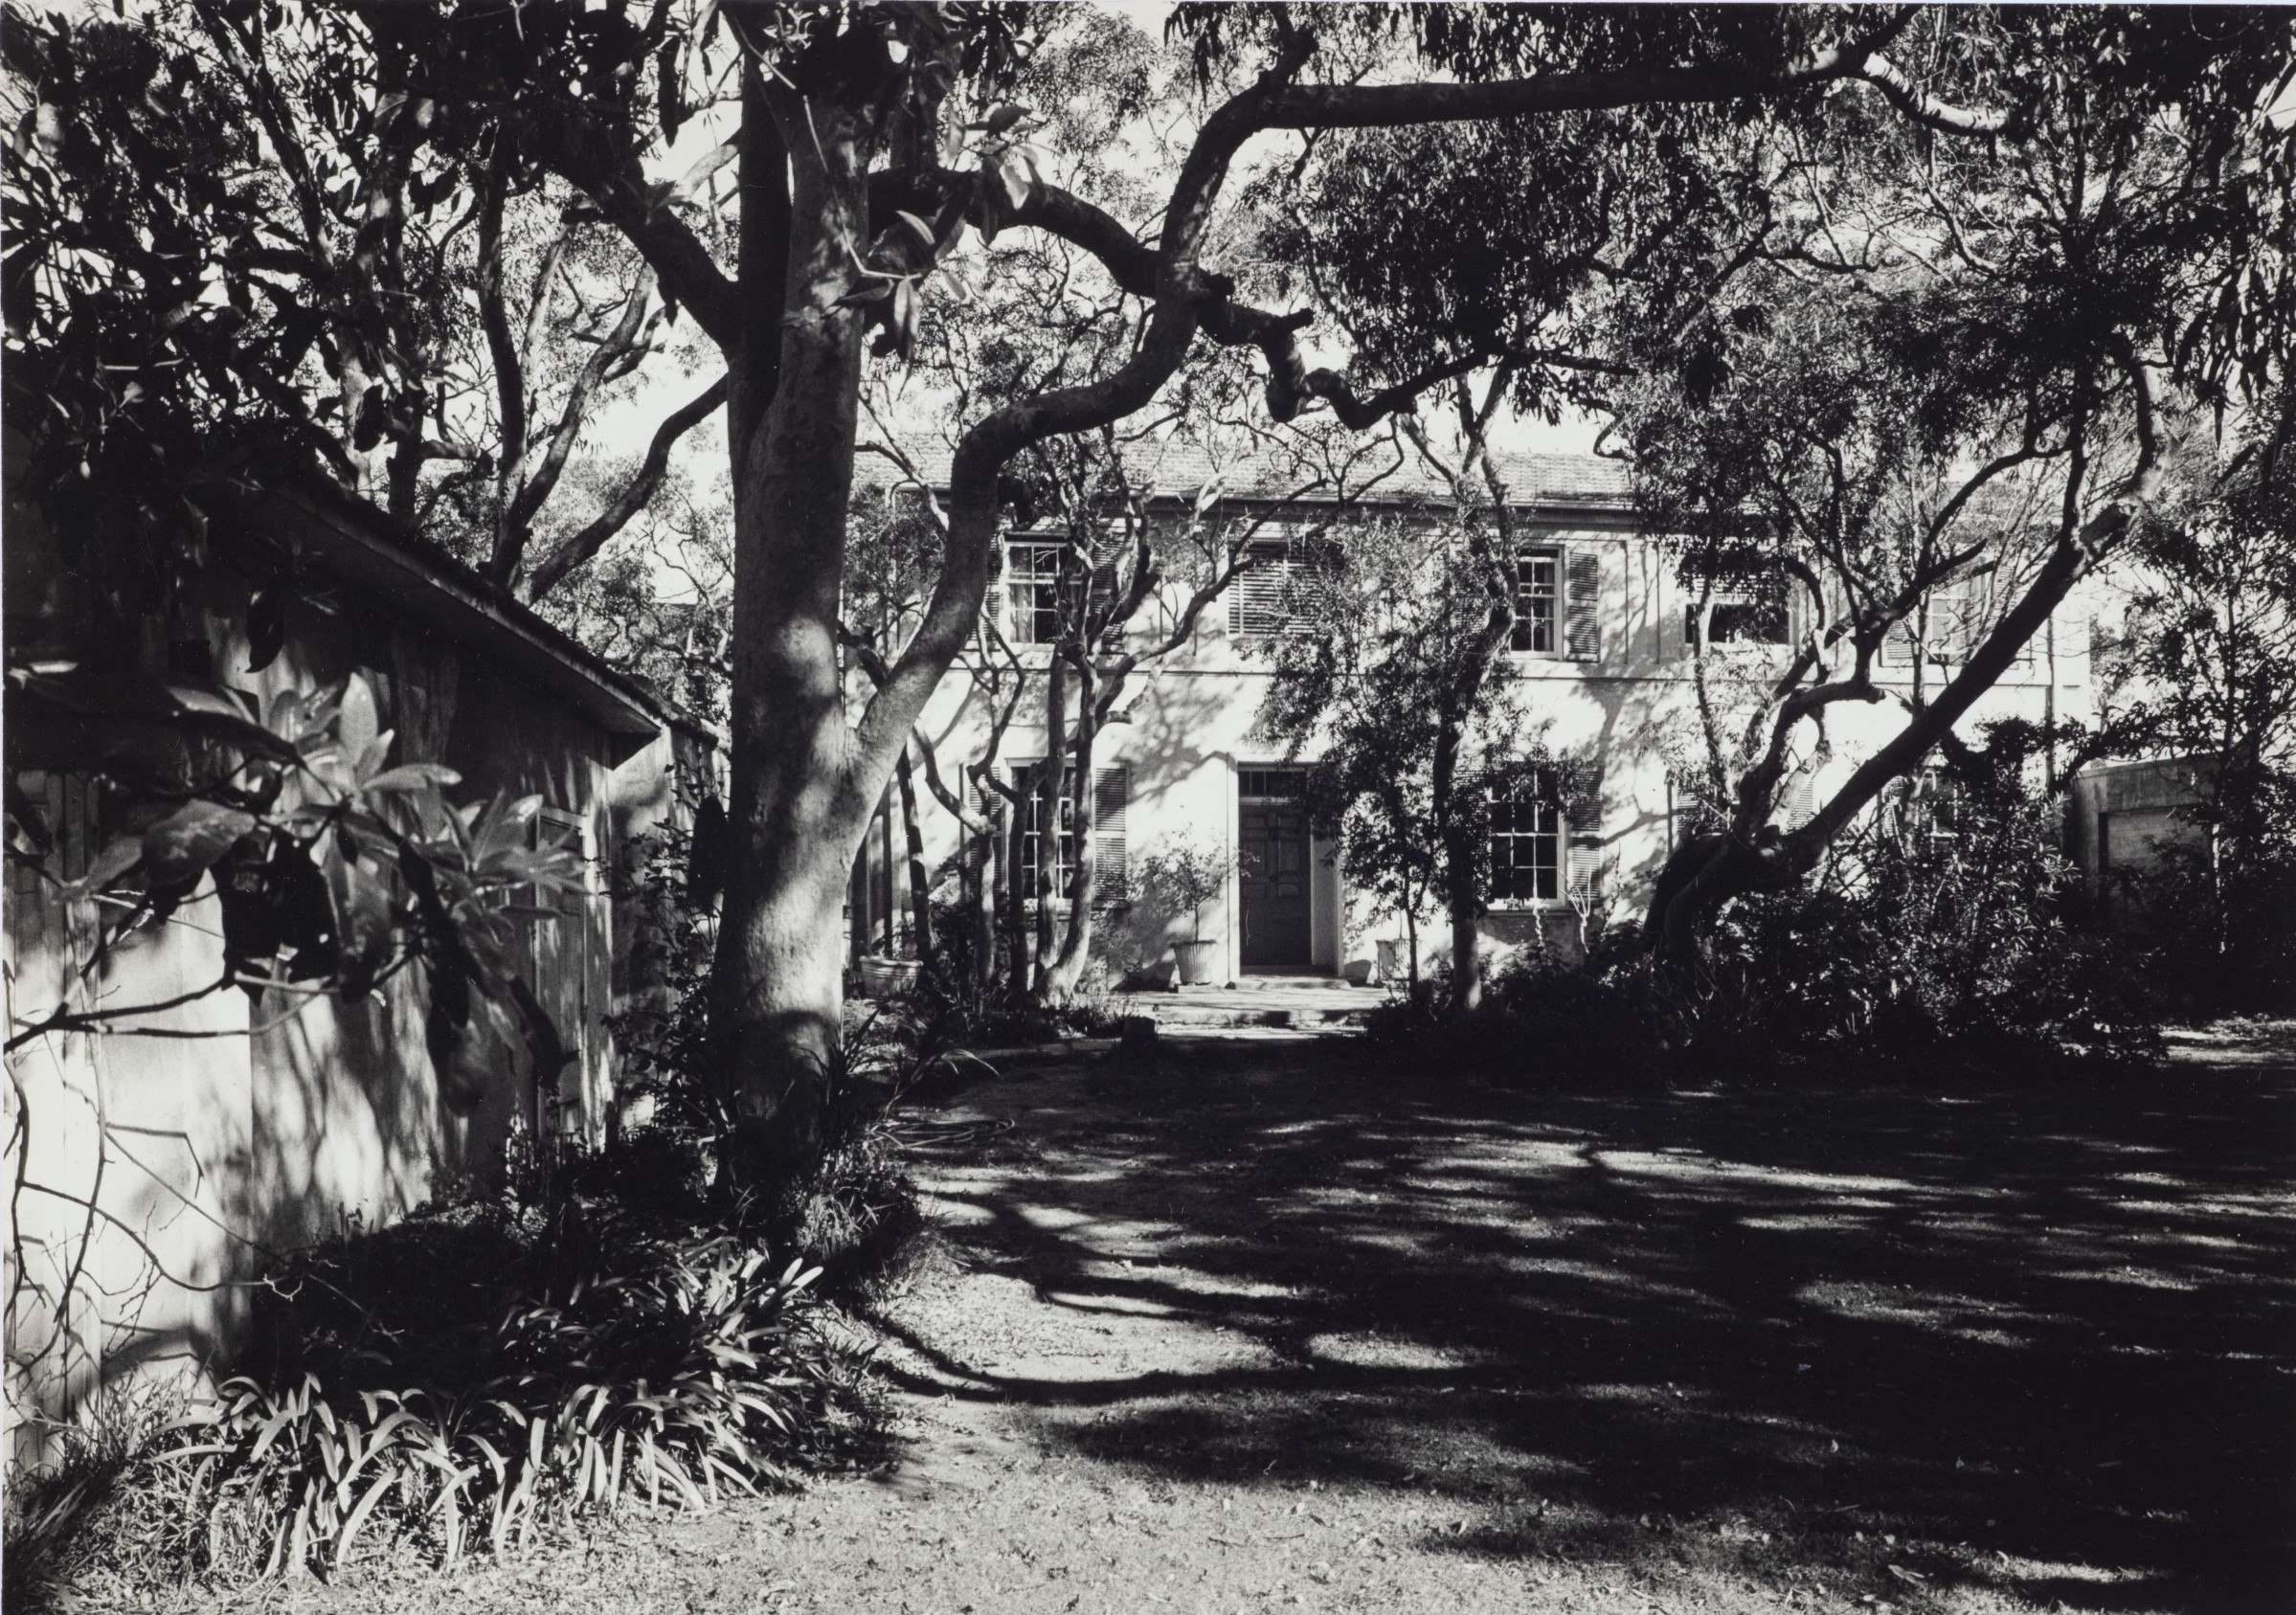 Greenway, Wentworth Road, Vaucluse. Photograph by James Whitelock